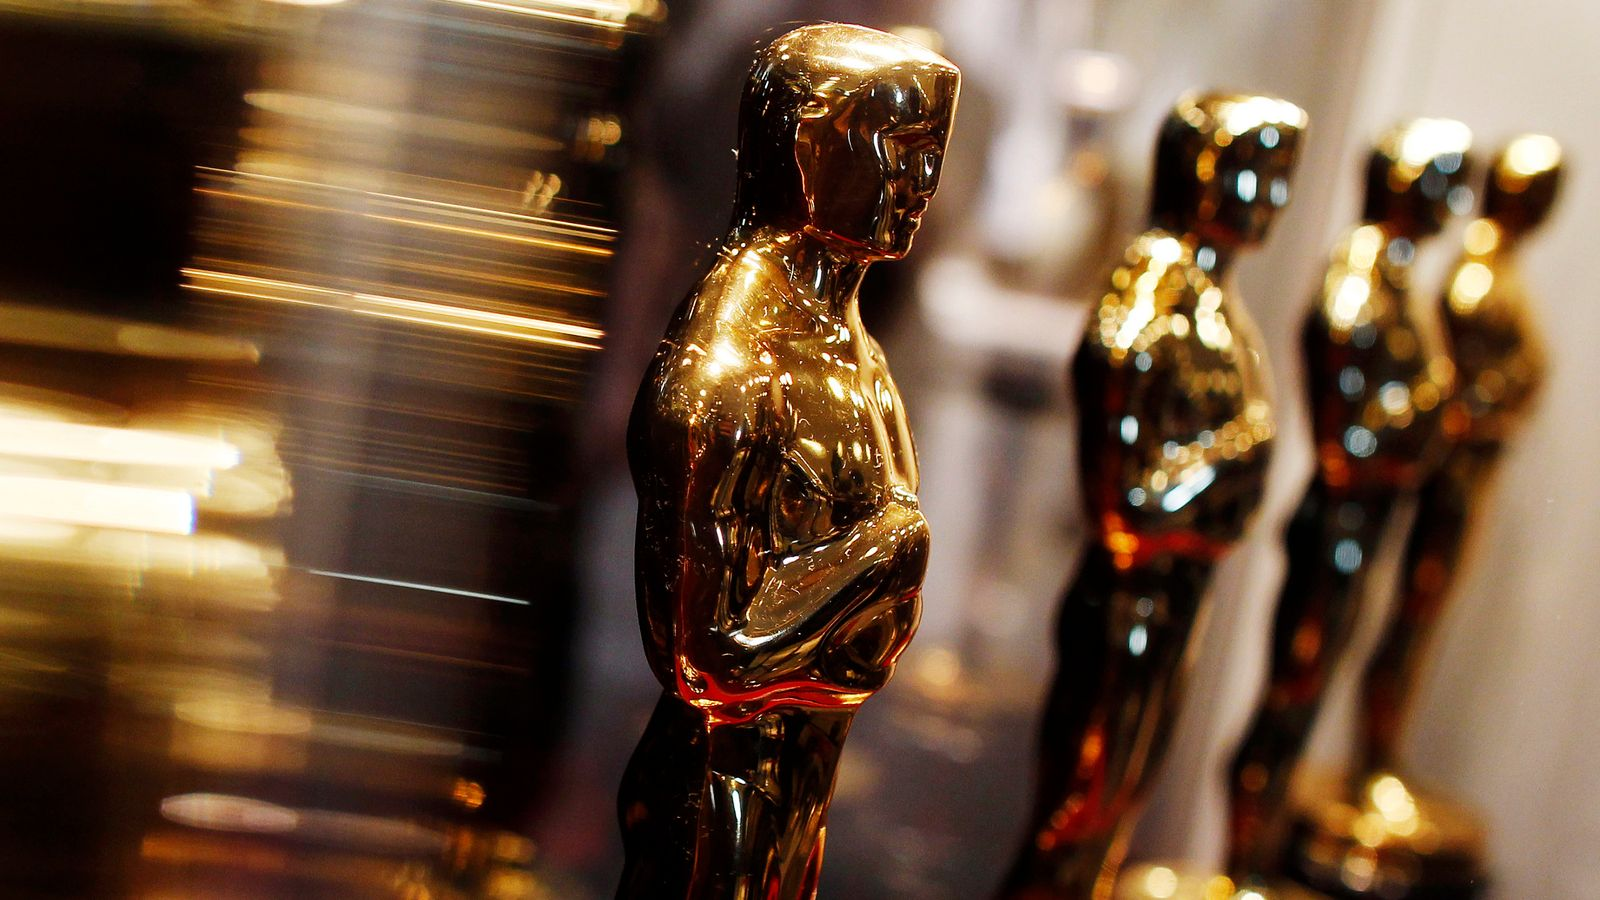 Oscars 2021: Academy Awards will happen 'in-person' from 'a number of places'